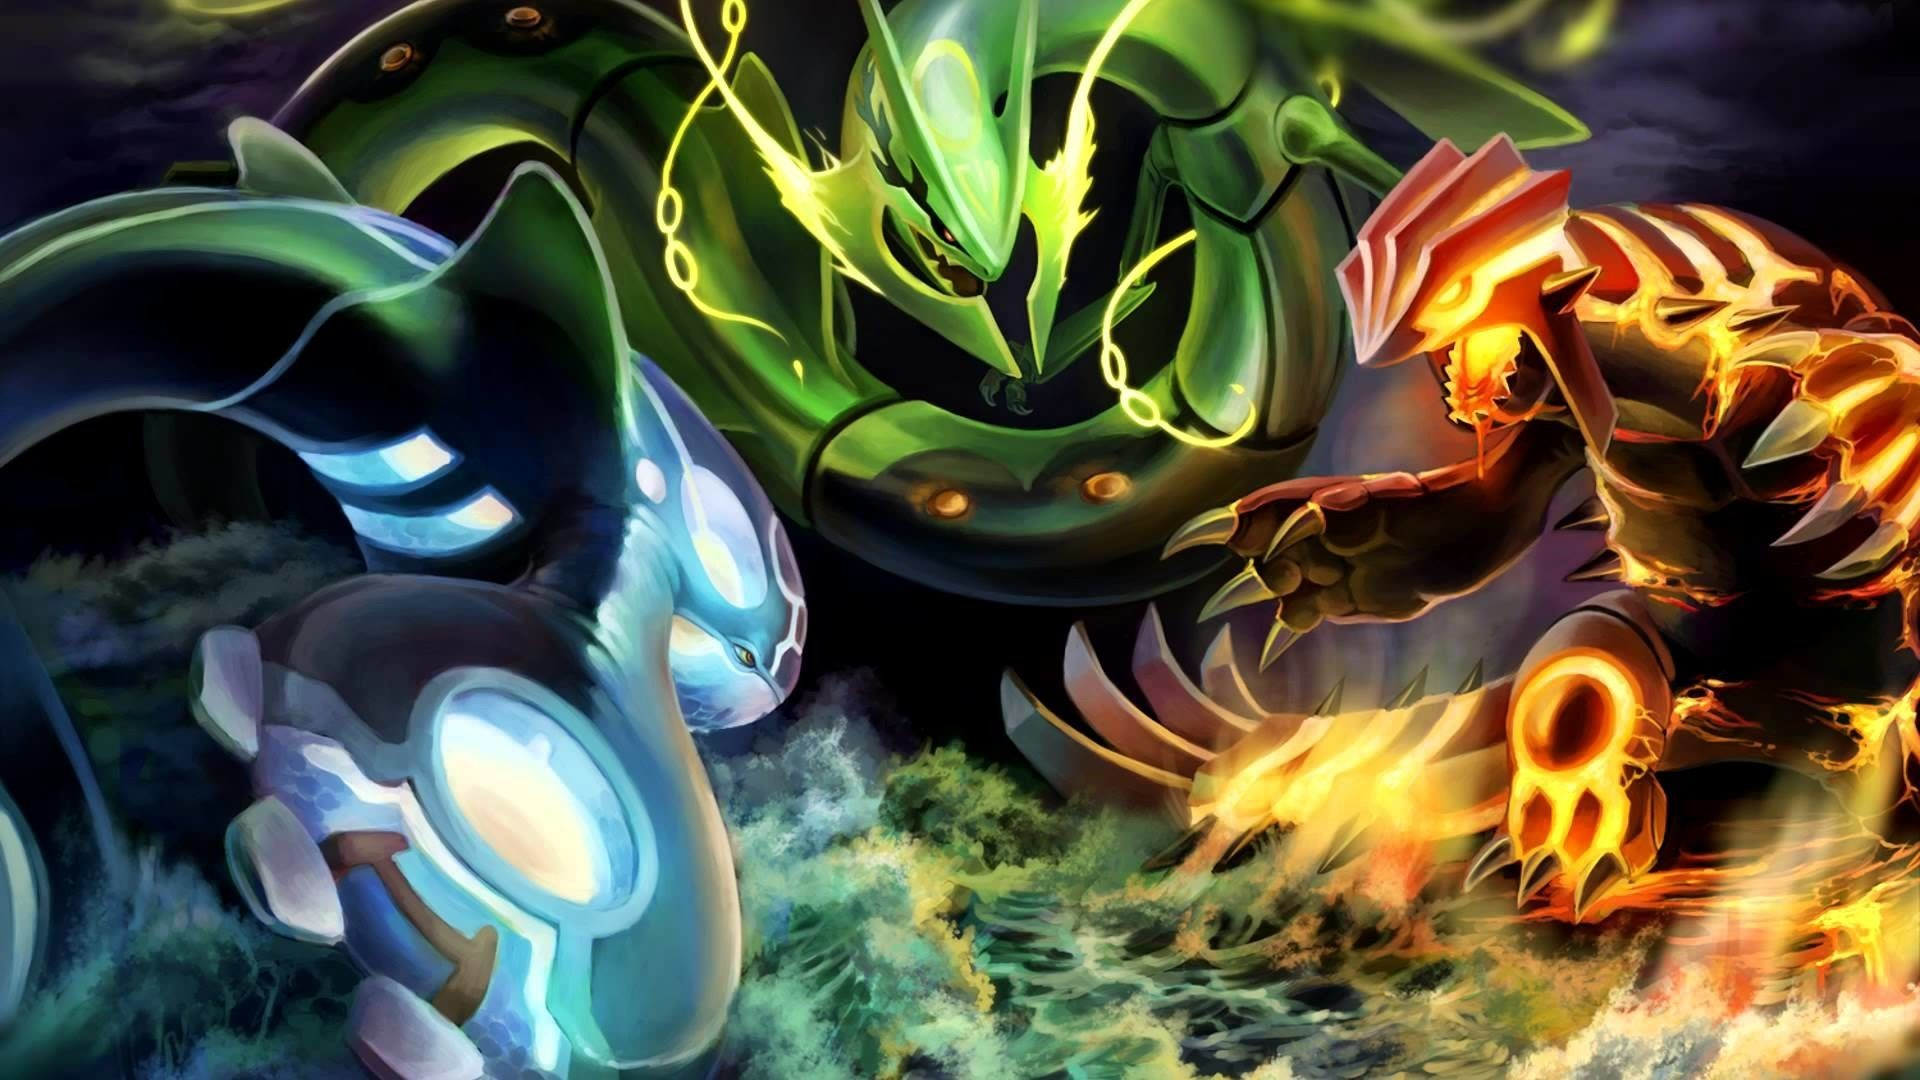 "1920x1080 750x1334 Video Game/Pokémon Omega Ruby And Alpha Sapphire (750x1334 ..."">"